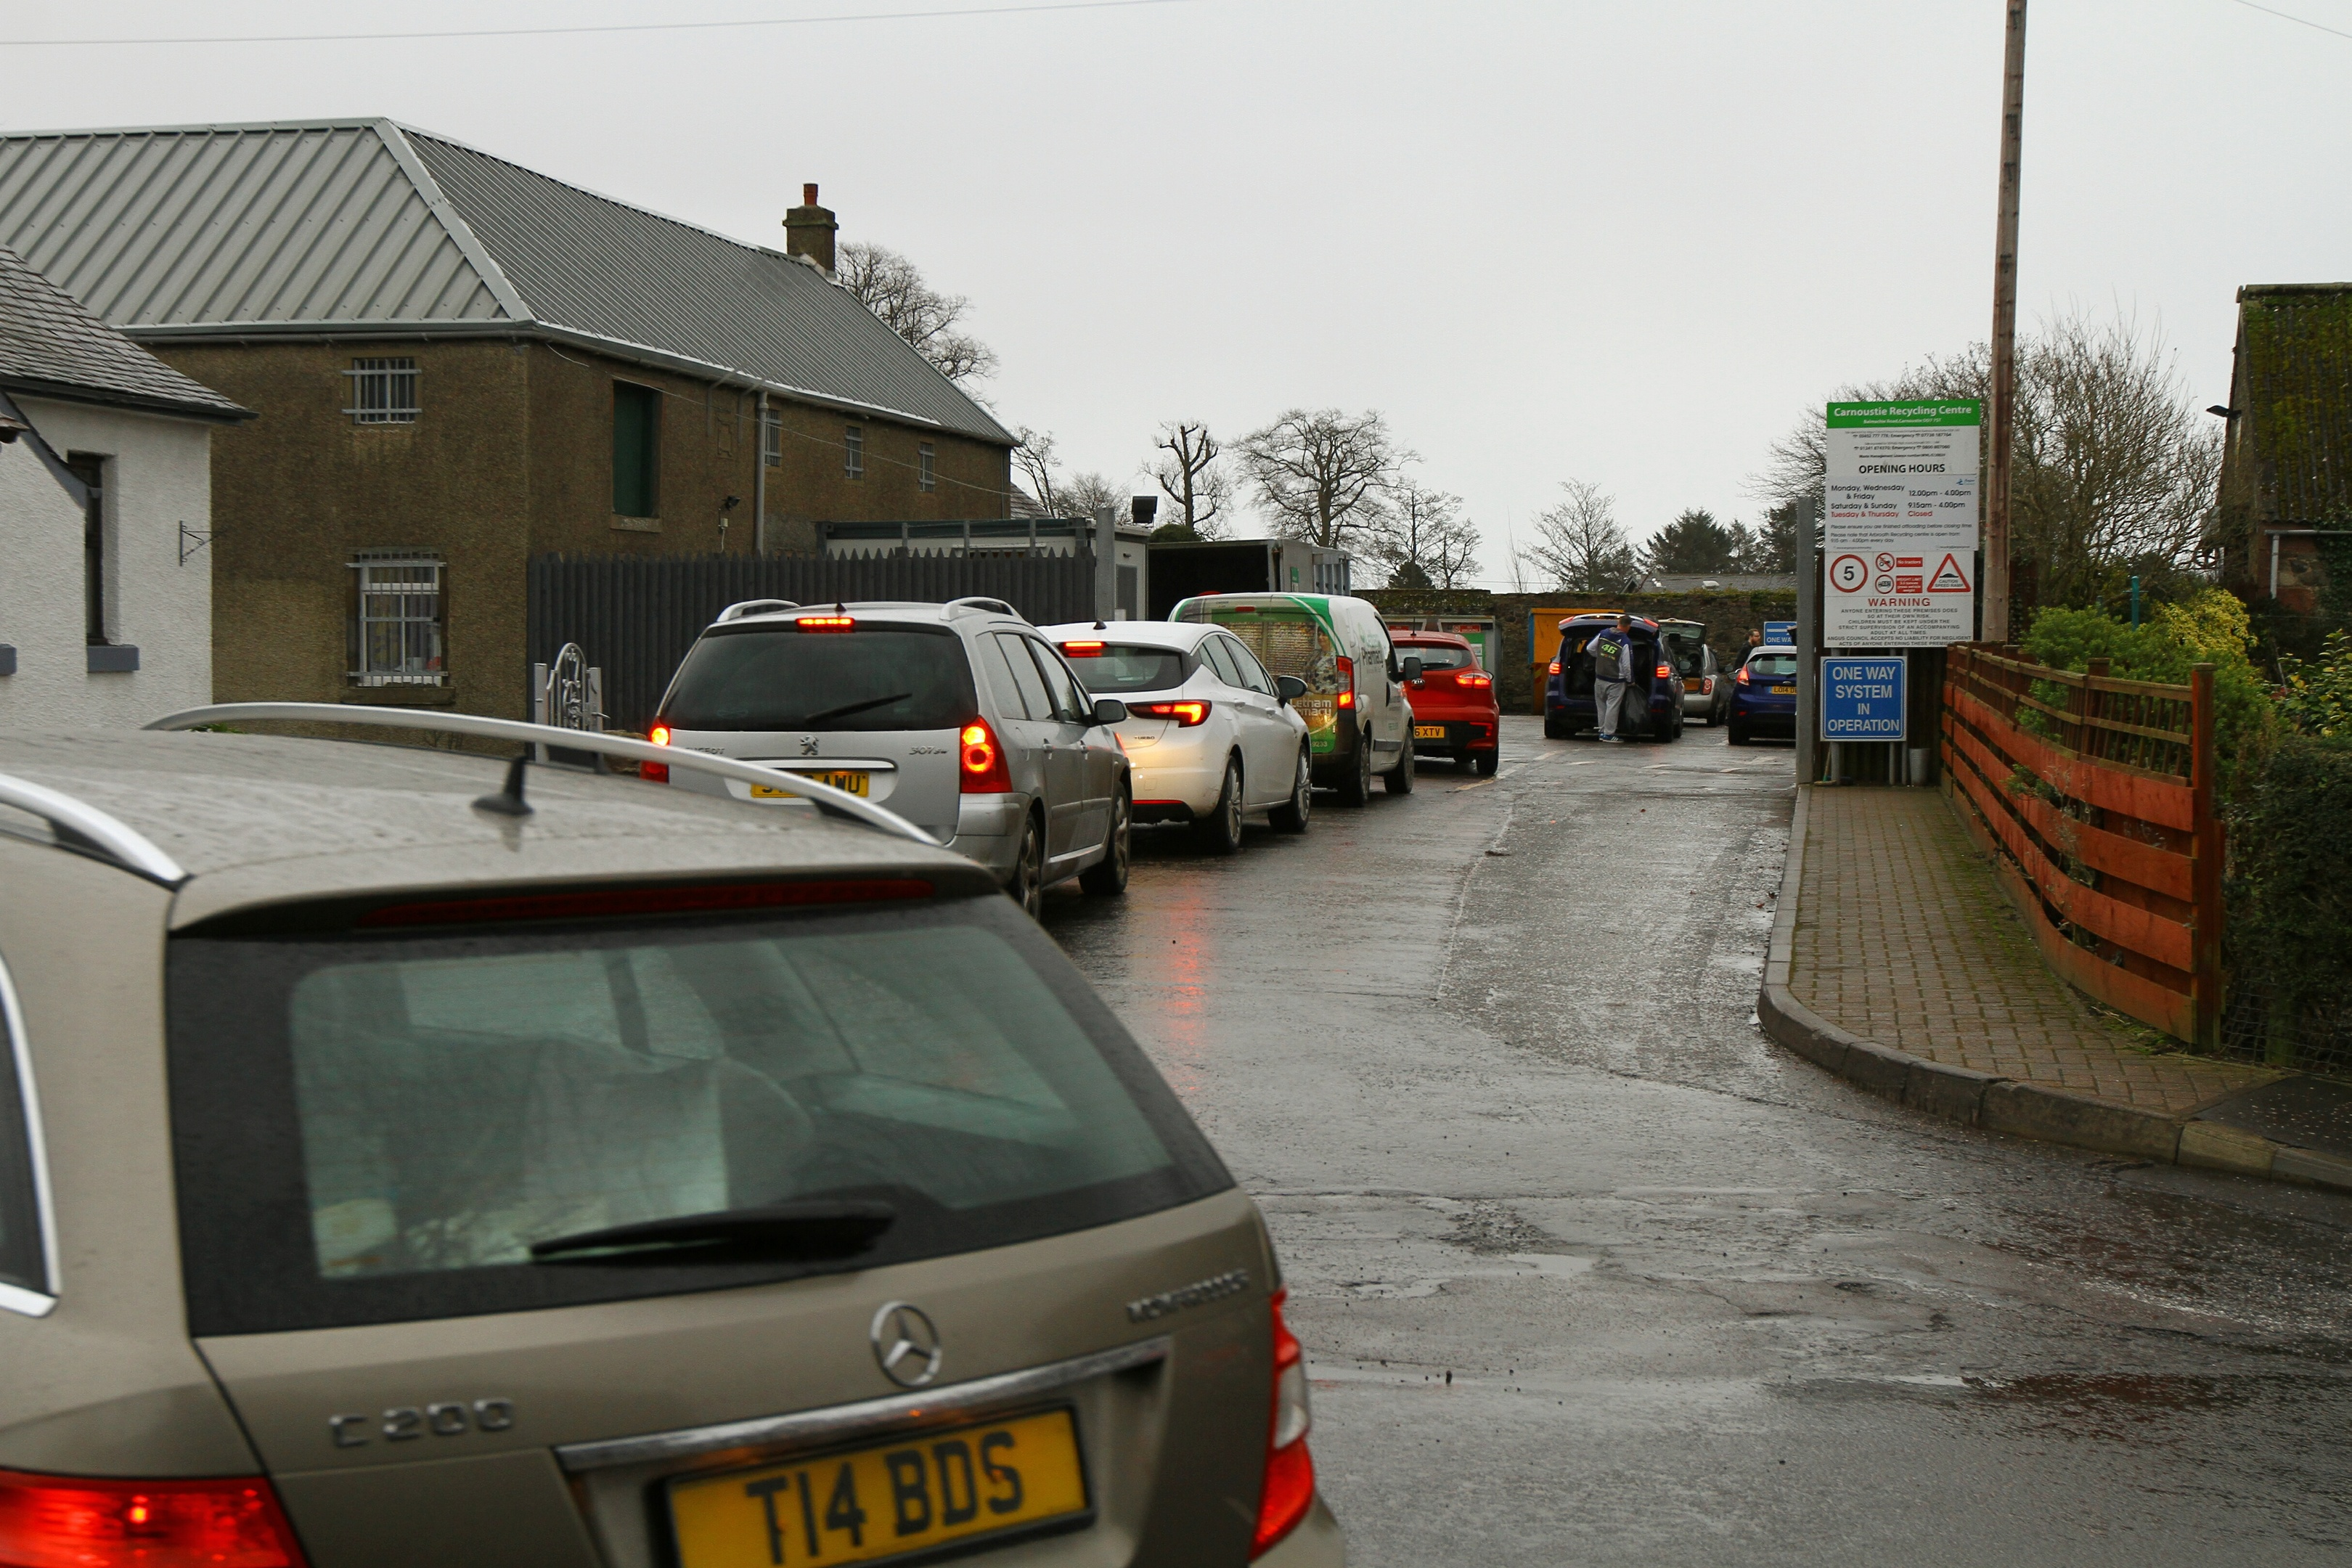 A queue of cars outside the Carnoustie Recycling Centre.